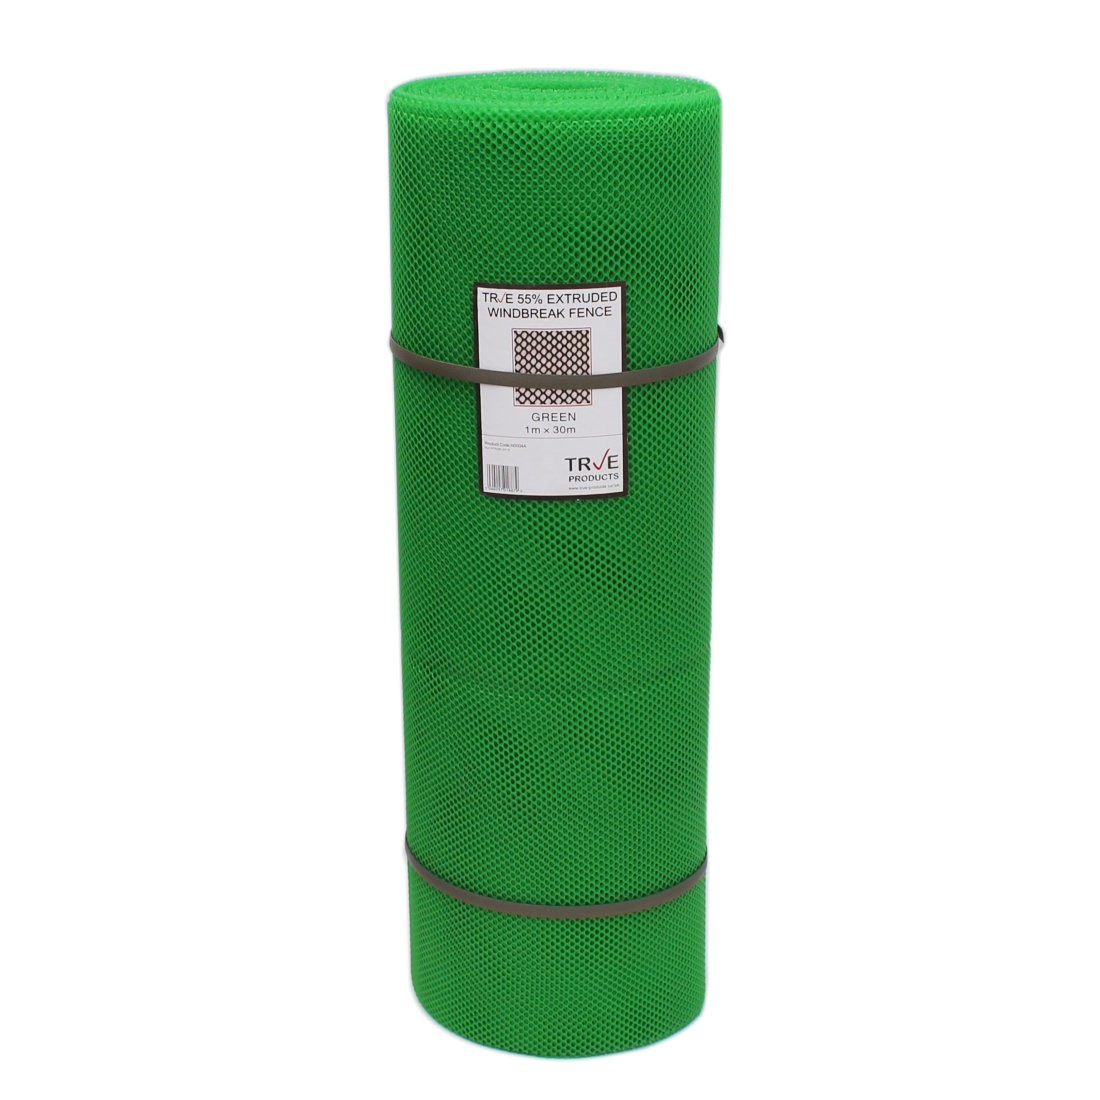 55% Windbreak Extruded Medium Mesh - 30m Roll - 1m High - Green